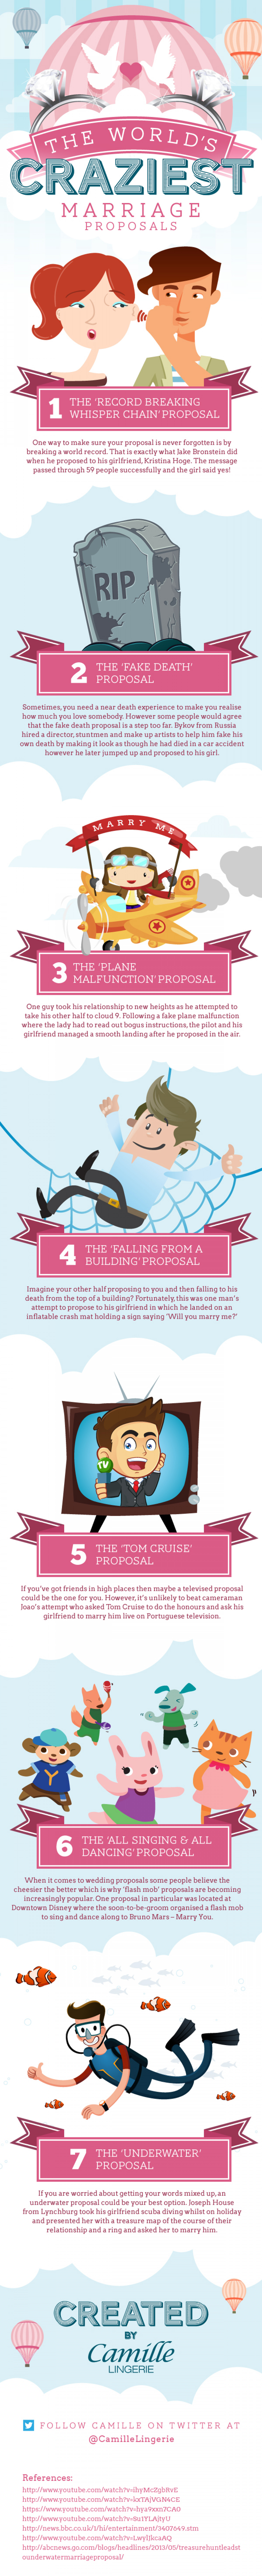 The Worlds Craziest Marriage Proposals Infographic